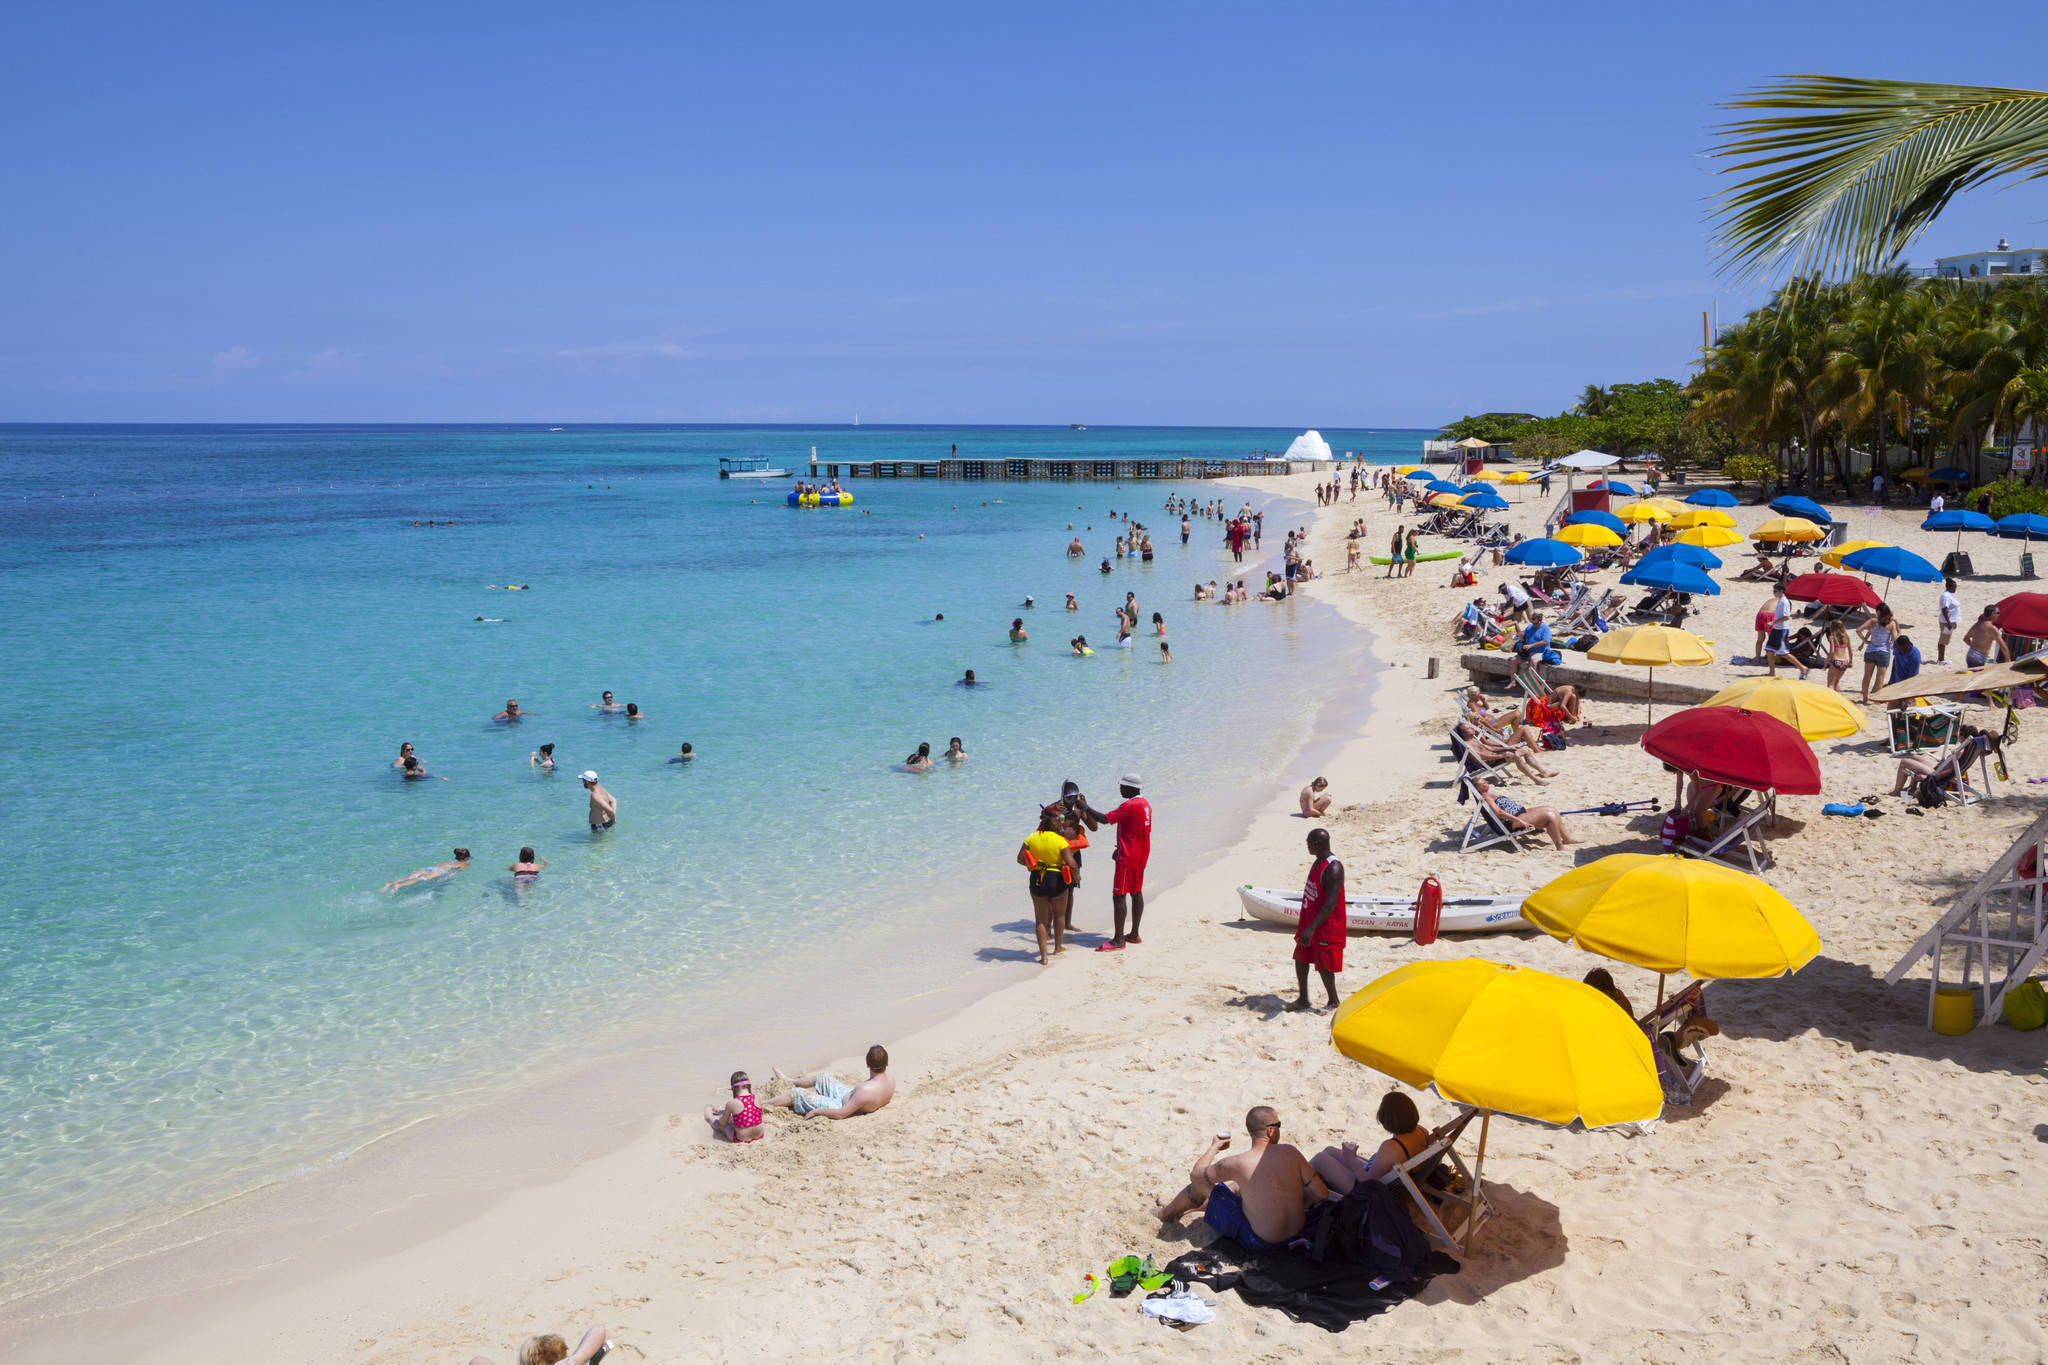 Is spring break safe? Public officials warn students of increased danger as vacations begin